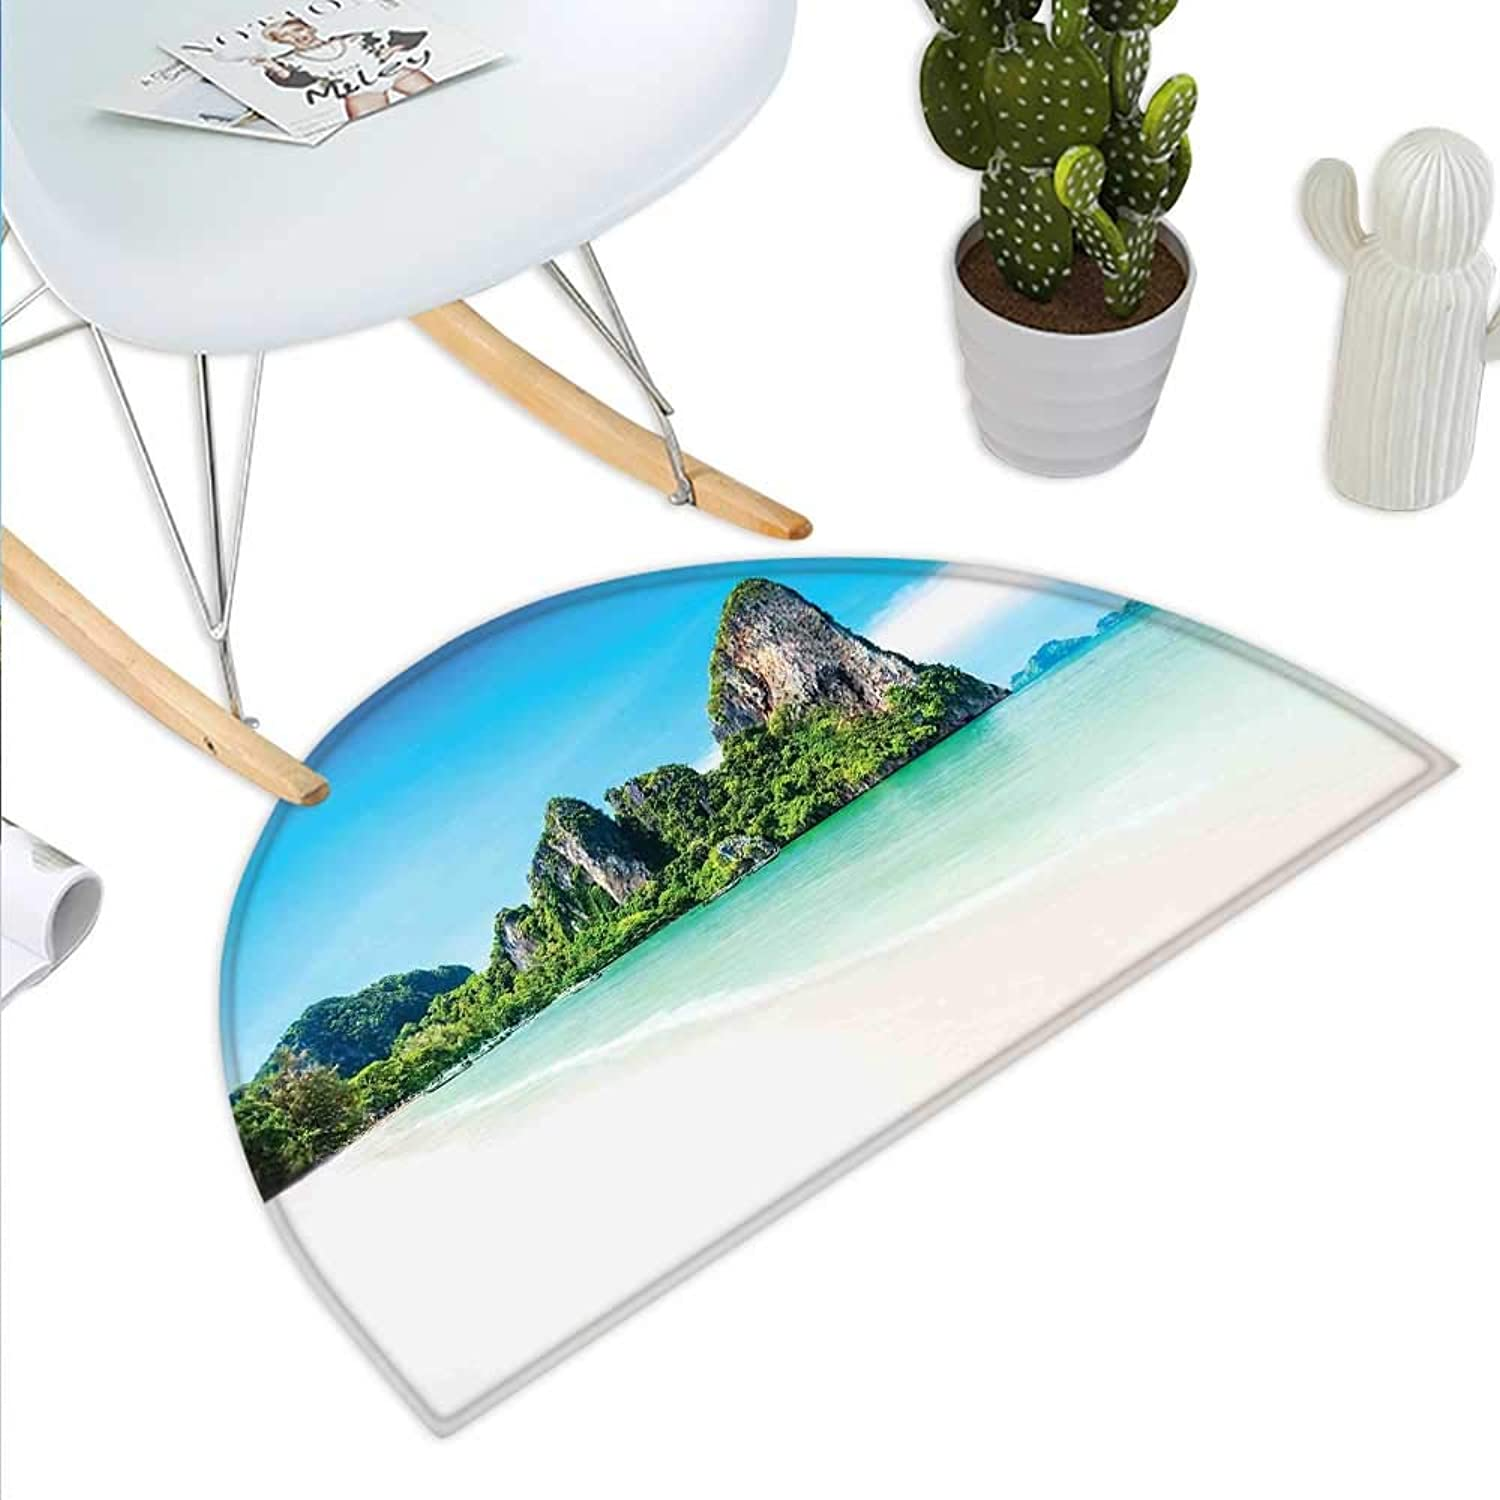 Landscape Semicircle Doormat Scenic View of a Beach with Lush Greenery and Limestone Rocks Summer Journey Halfmoon doormats H 43.3  xD 64.9  Multicolor